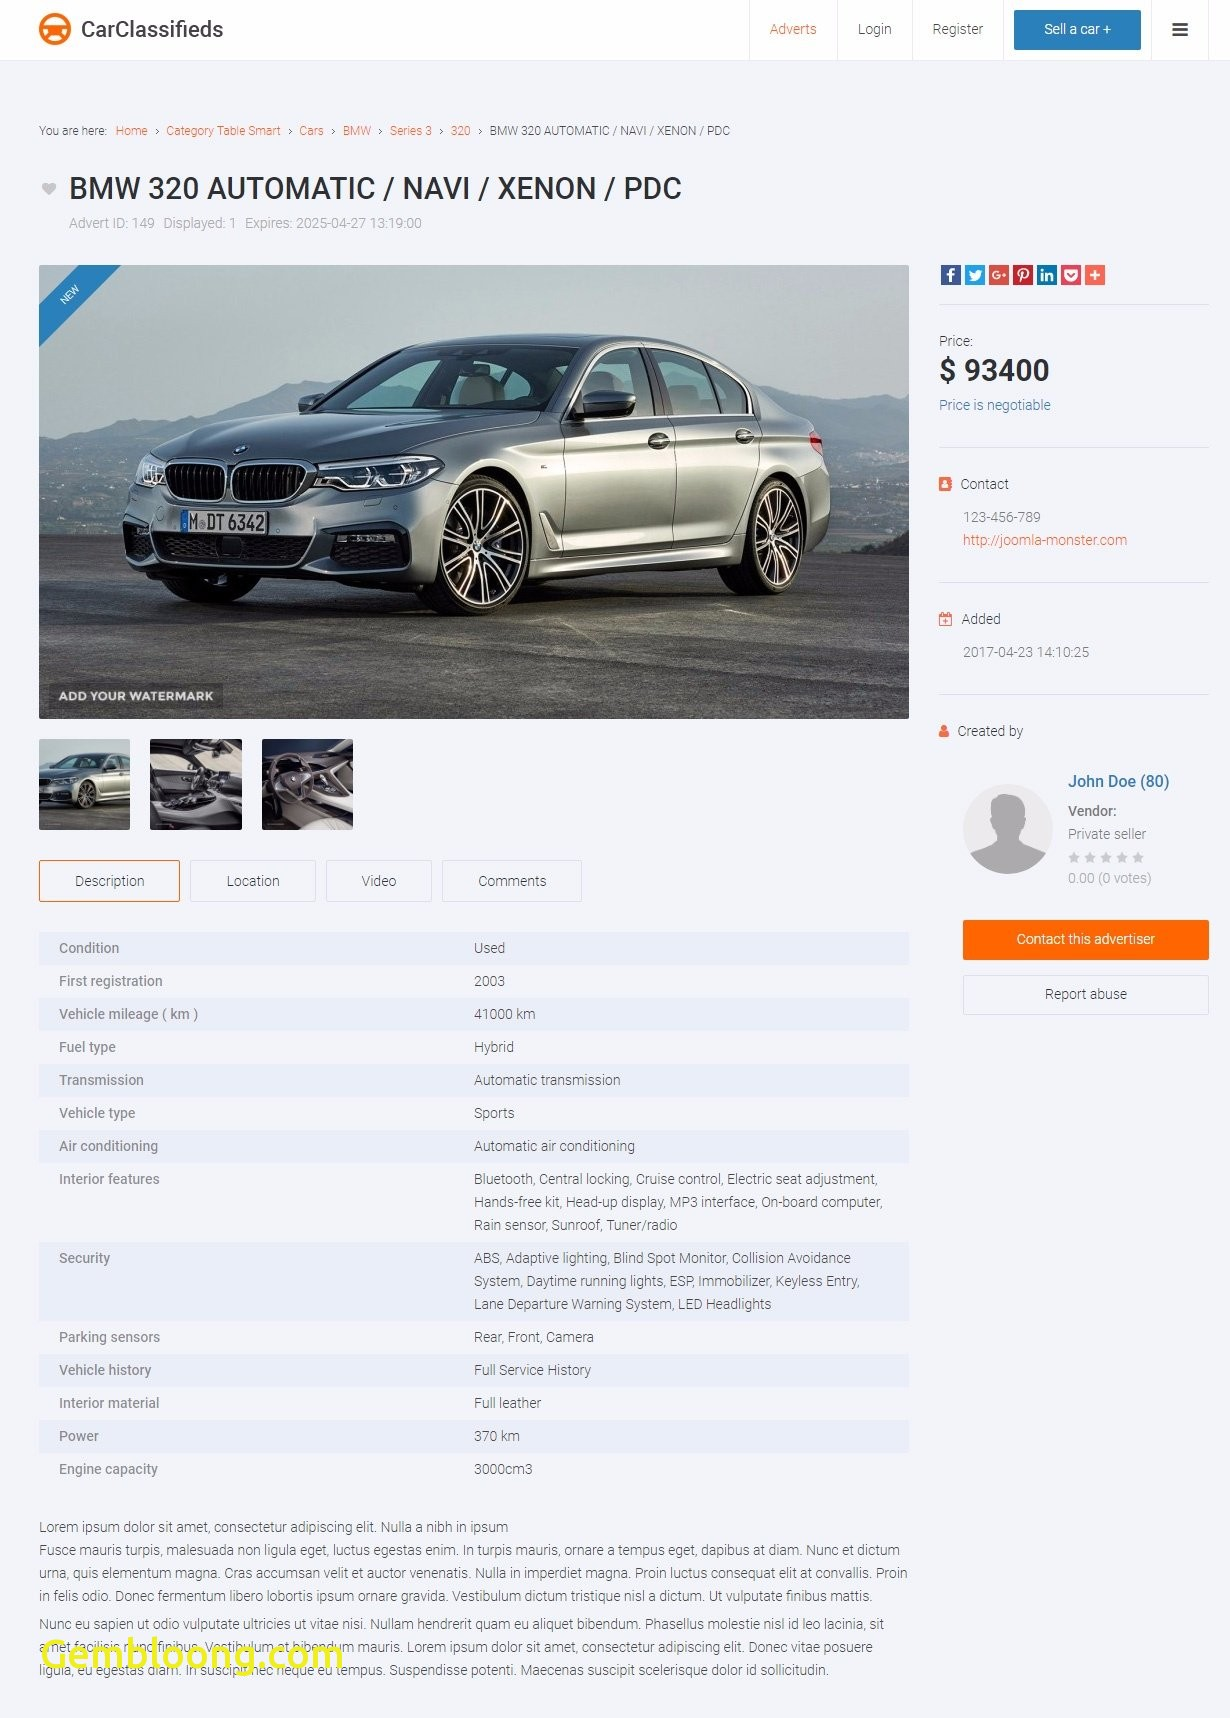 used car classifieds unique car classifieds website template auctions joomla monster